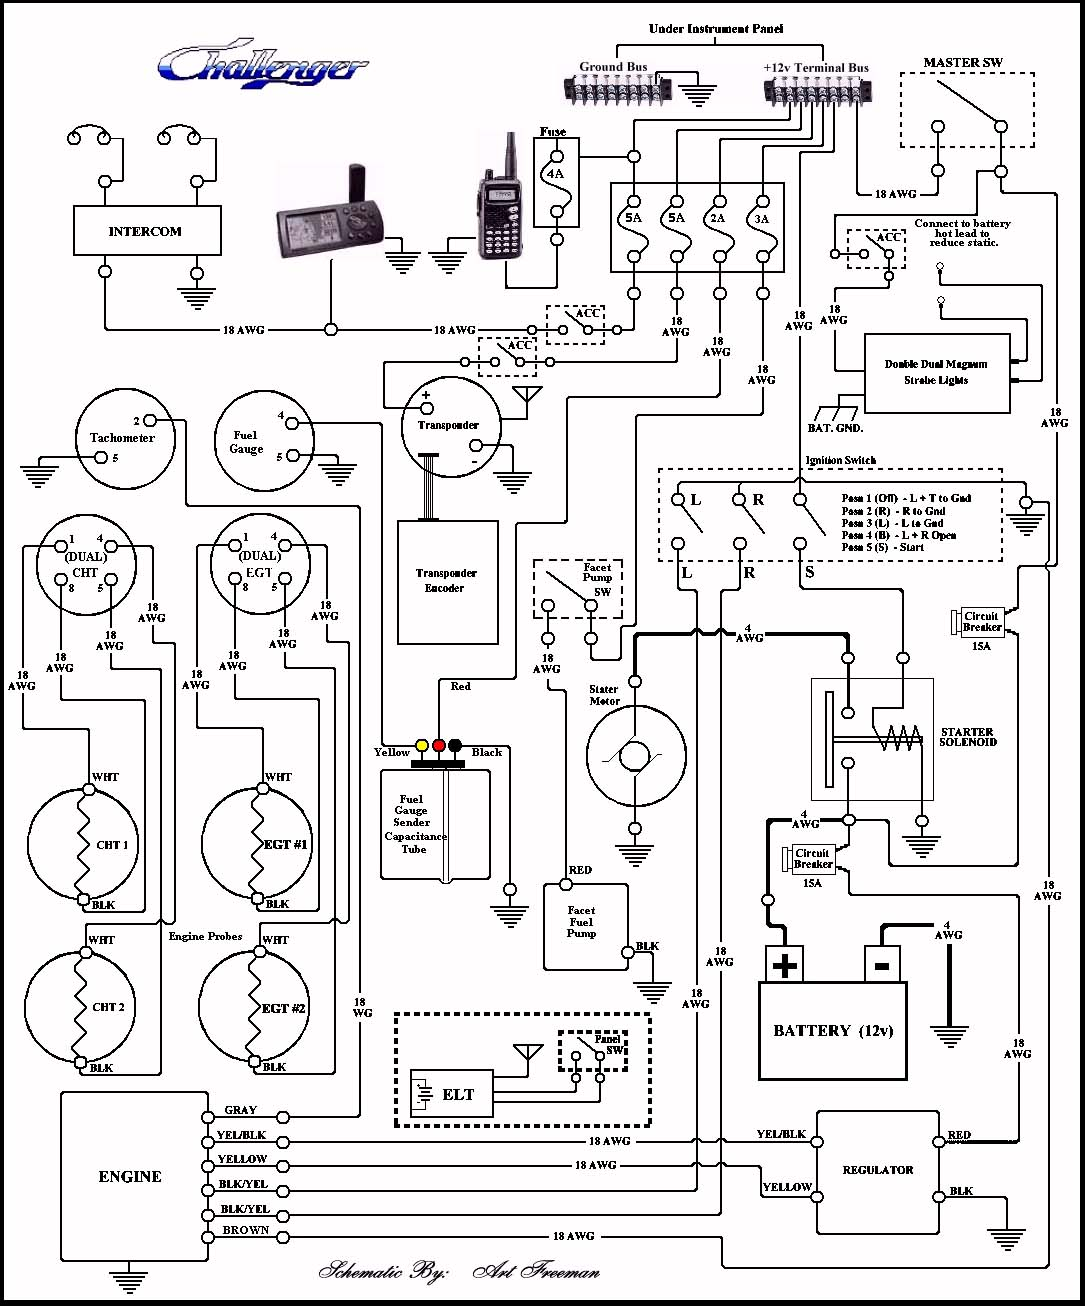 Schem_Analog basic wiring of fuselage, instruments and power source cessna master switch wiring diagram at crackthecode.co